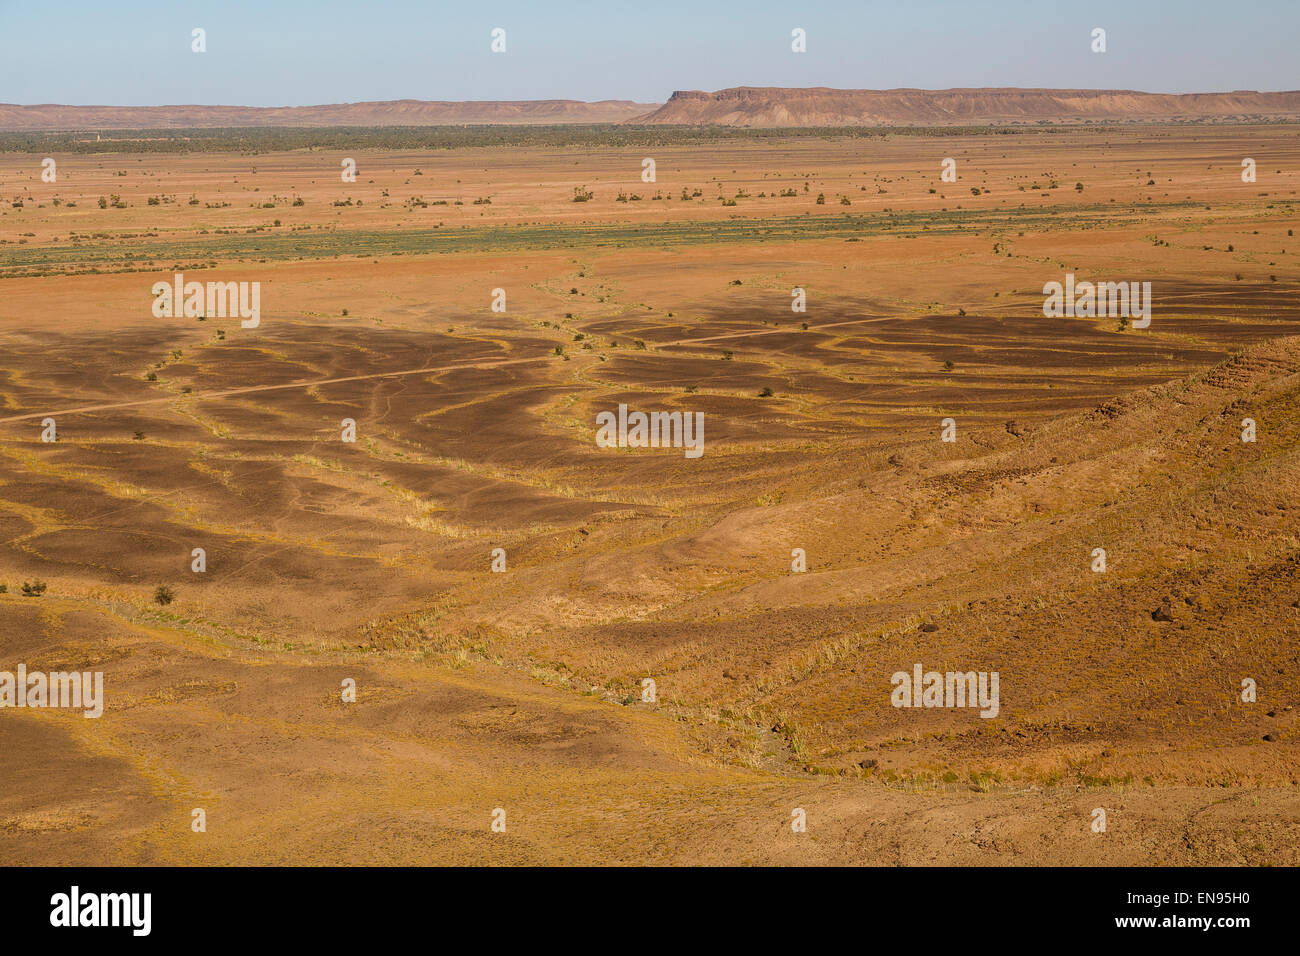 View. Tizi n Bensalmane. Road between Tamegruoute and M´hamid. Morrocco. Africa. - Stock Image